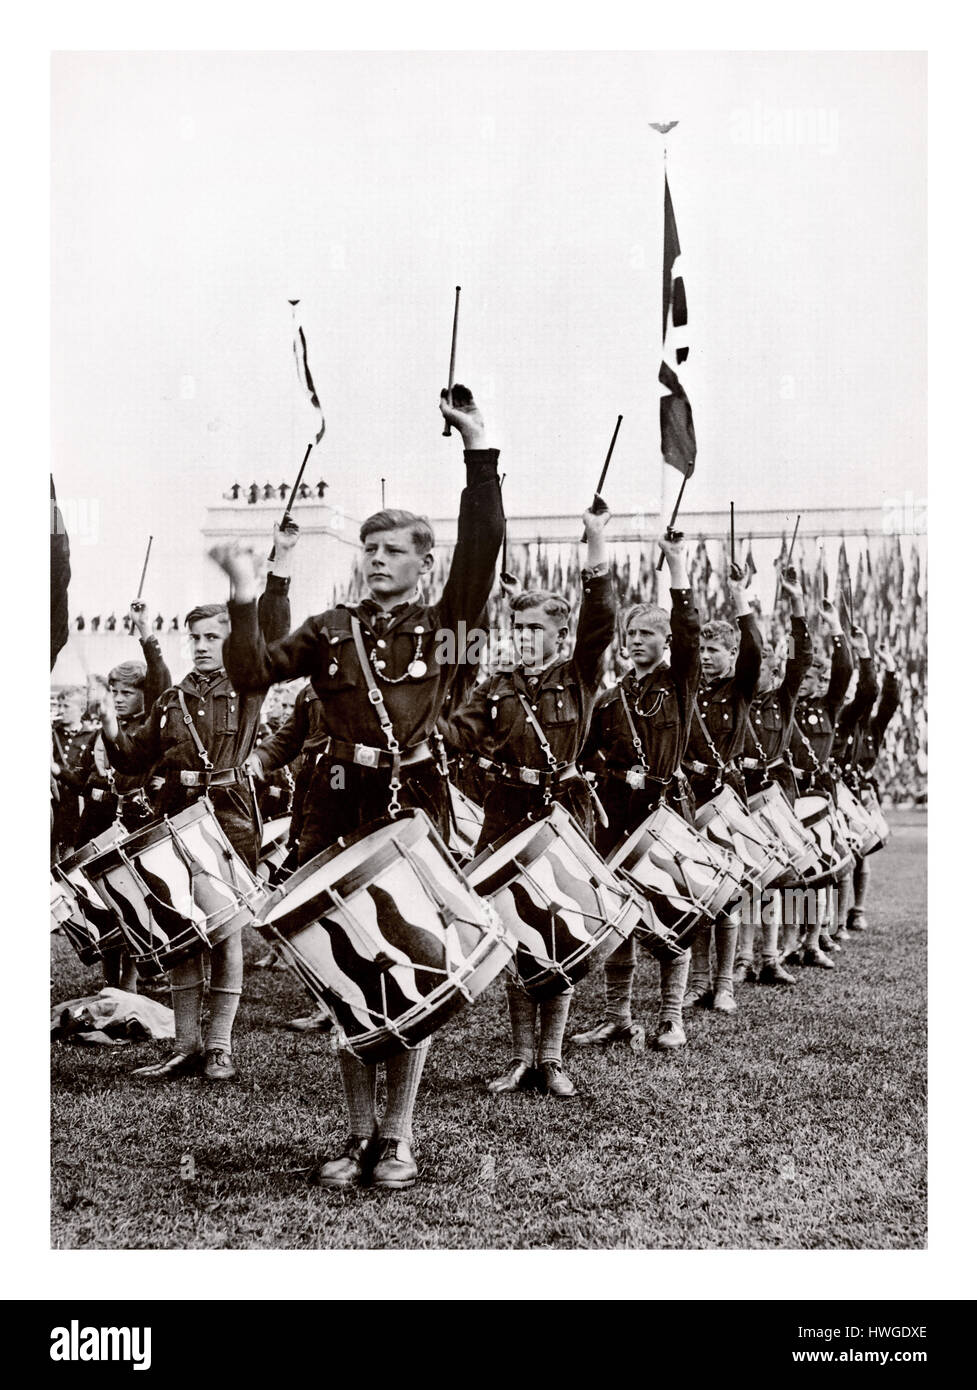 Hitler Youth boy drummers on parade in Zeppelin Field Nuremberg for rallying speeches from Adolf Hitler Sept 14th - Stock Image